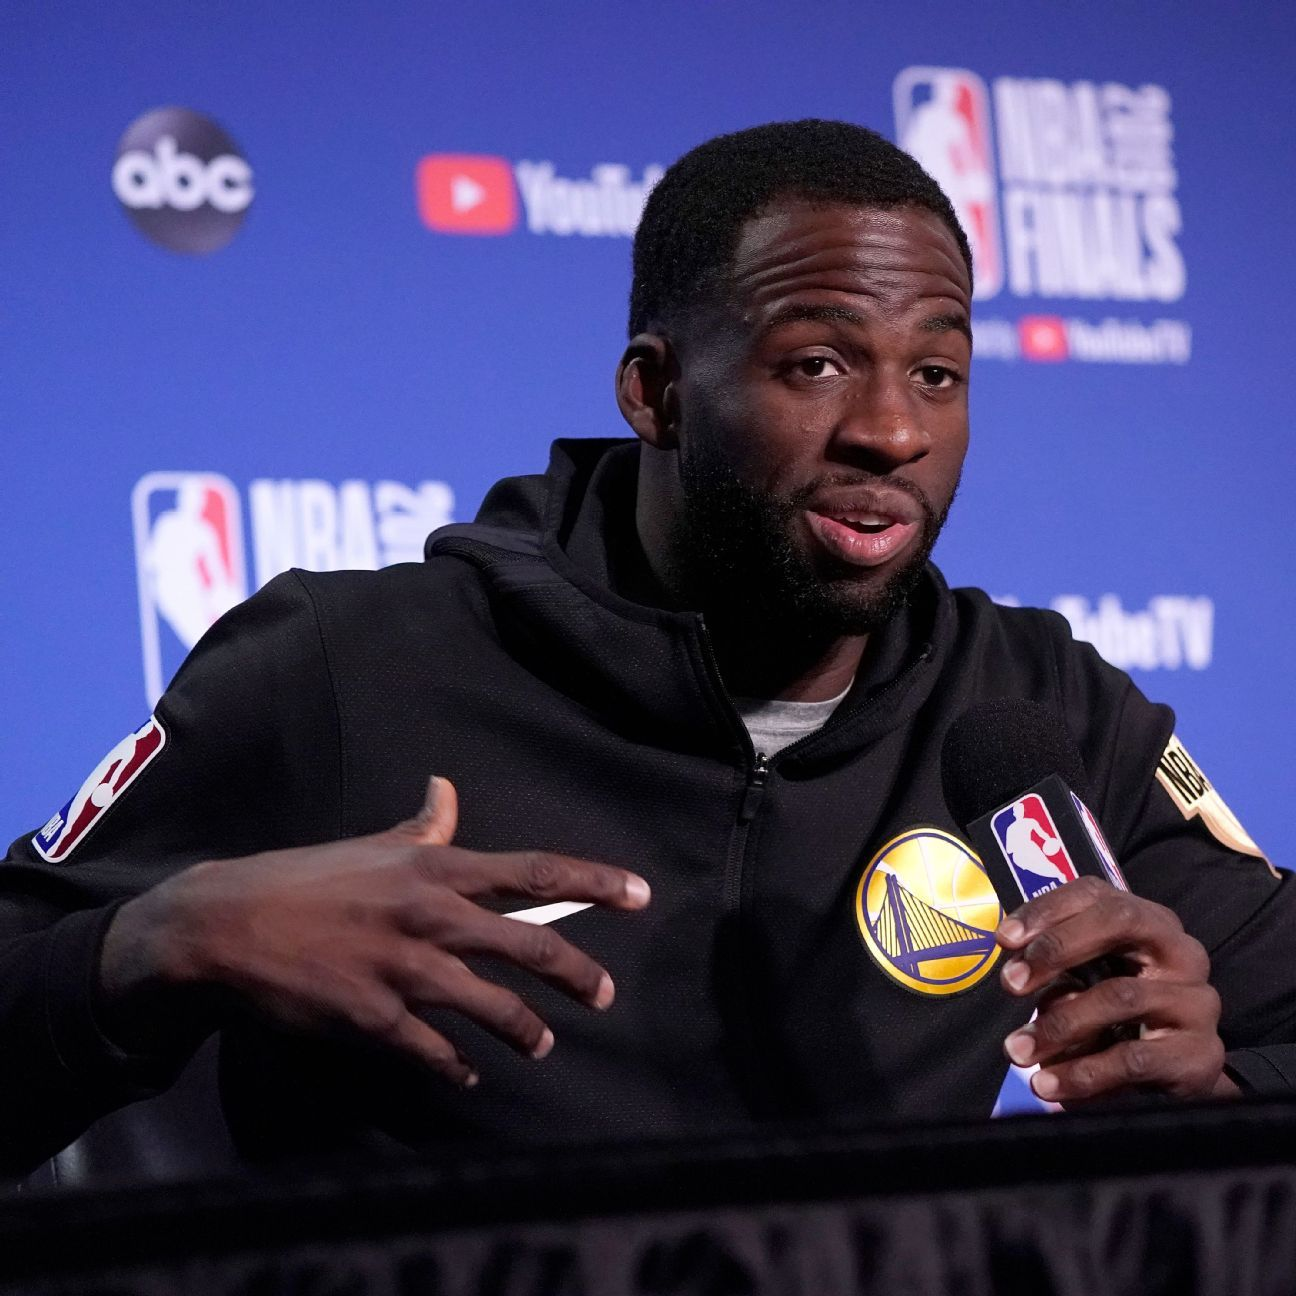 Draymond Green: No one ever blames teams when picks struggle